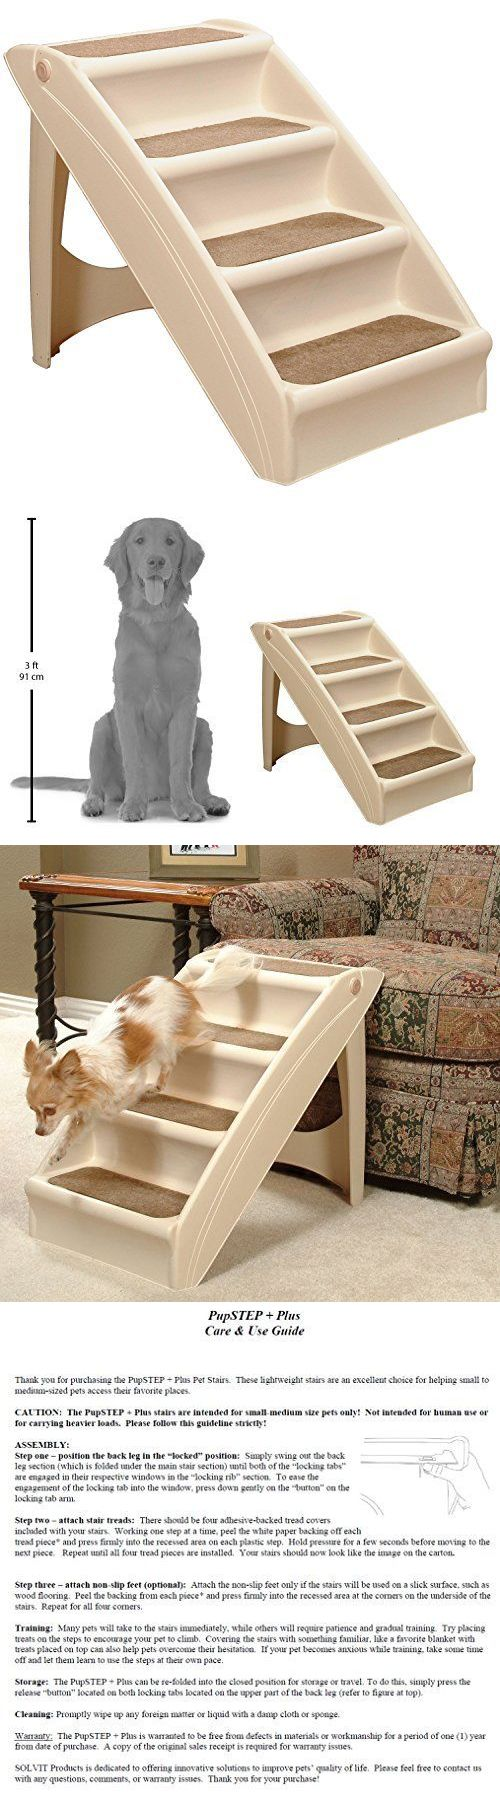 beds prepossessing dog within for perfect high lightweight stairs stairsteps bed cat pet